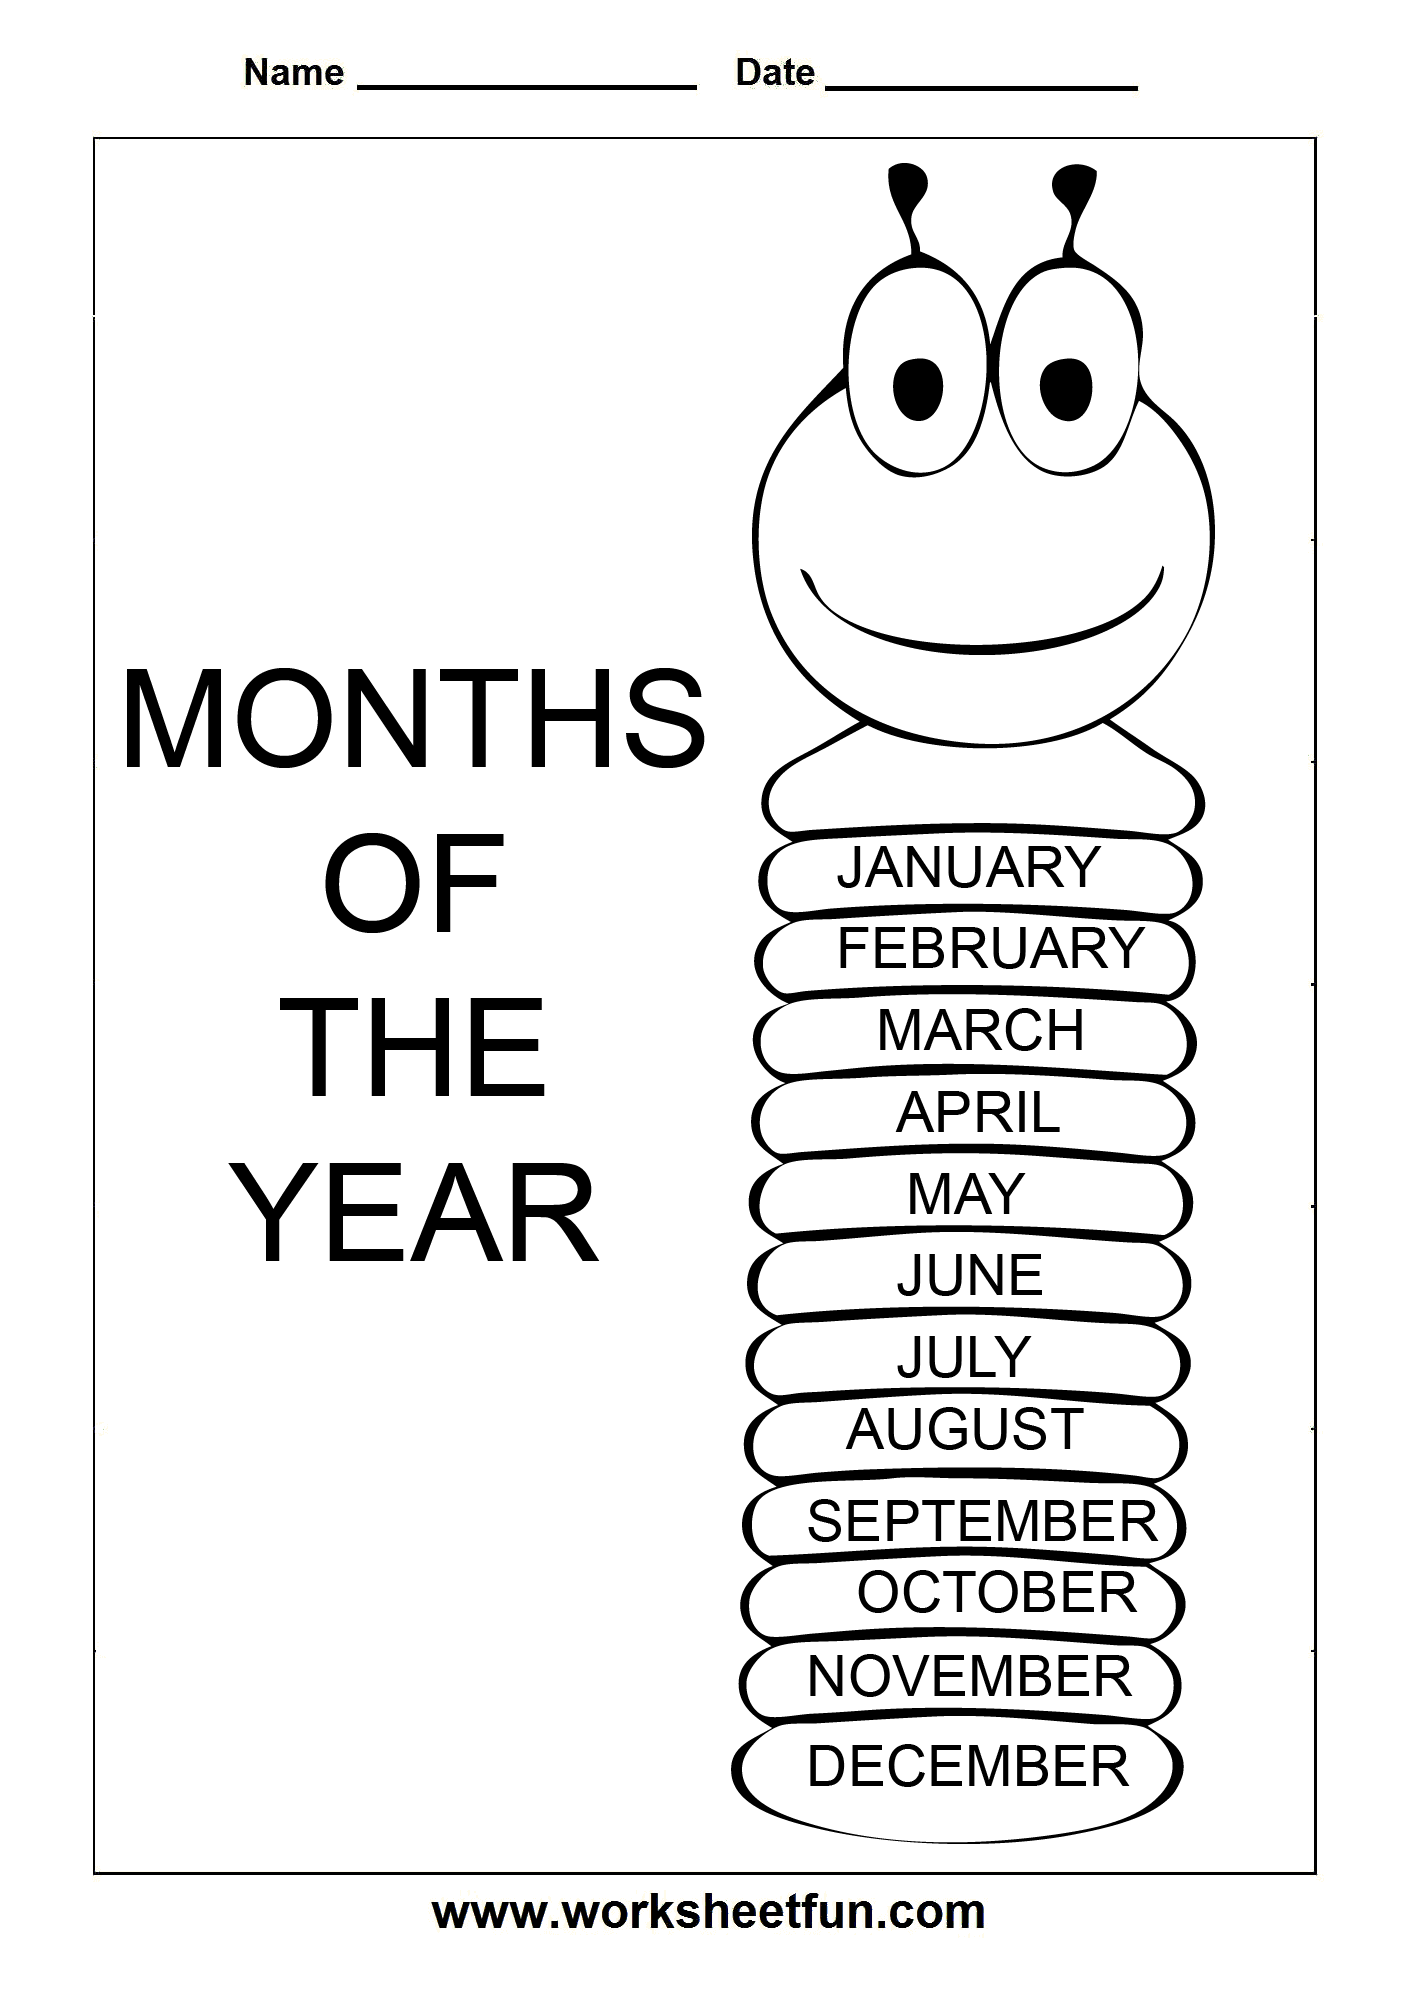 Days Of The Week Months Year Early Academics Worksheets